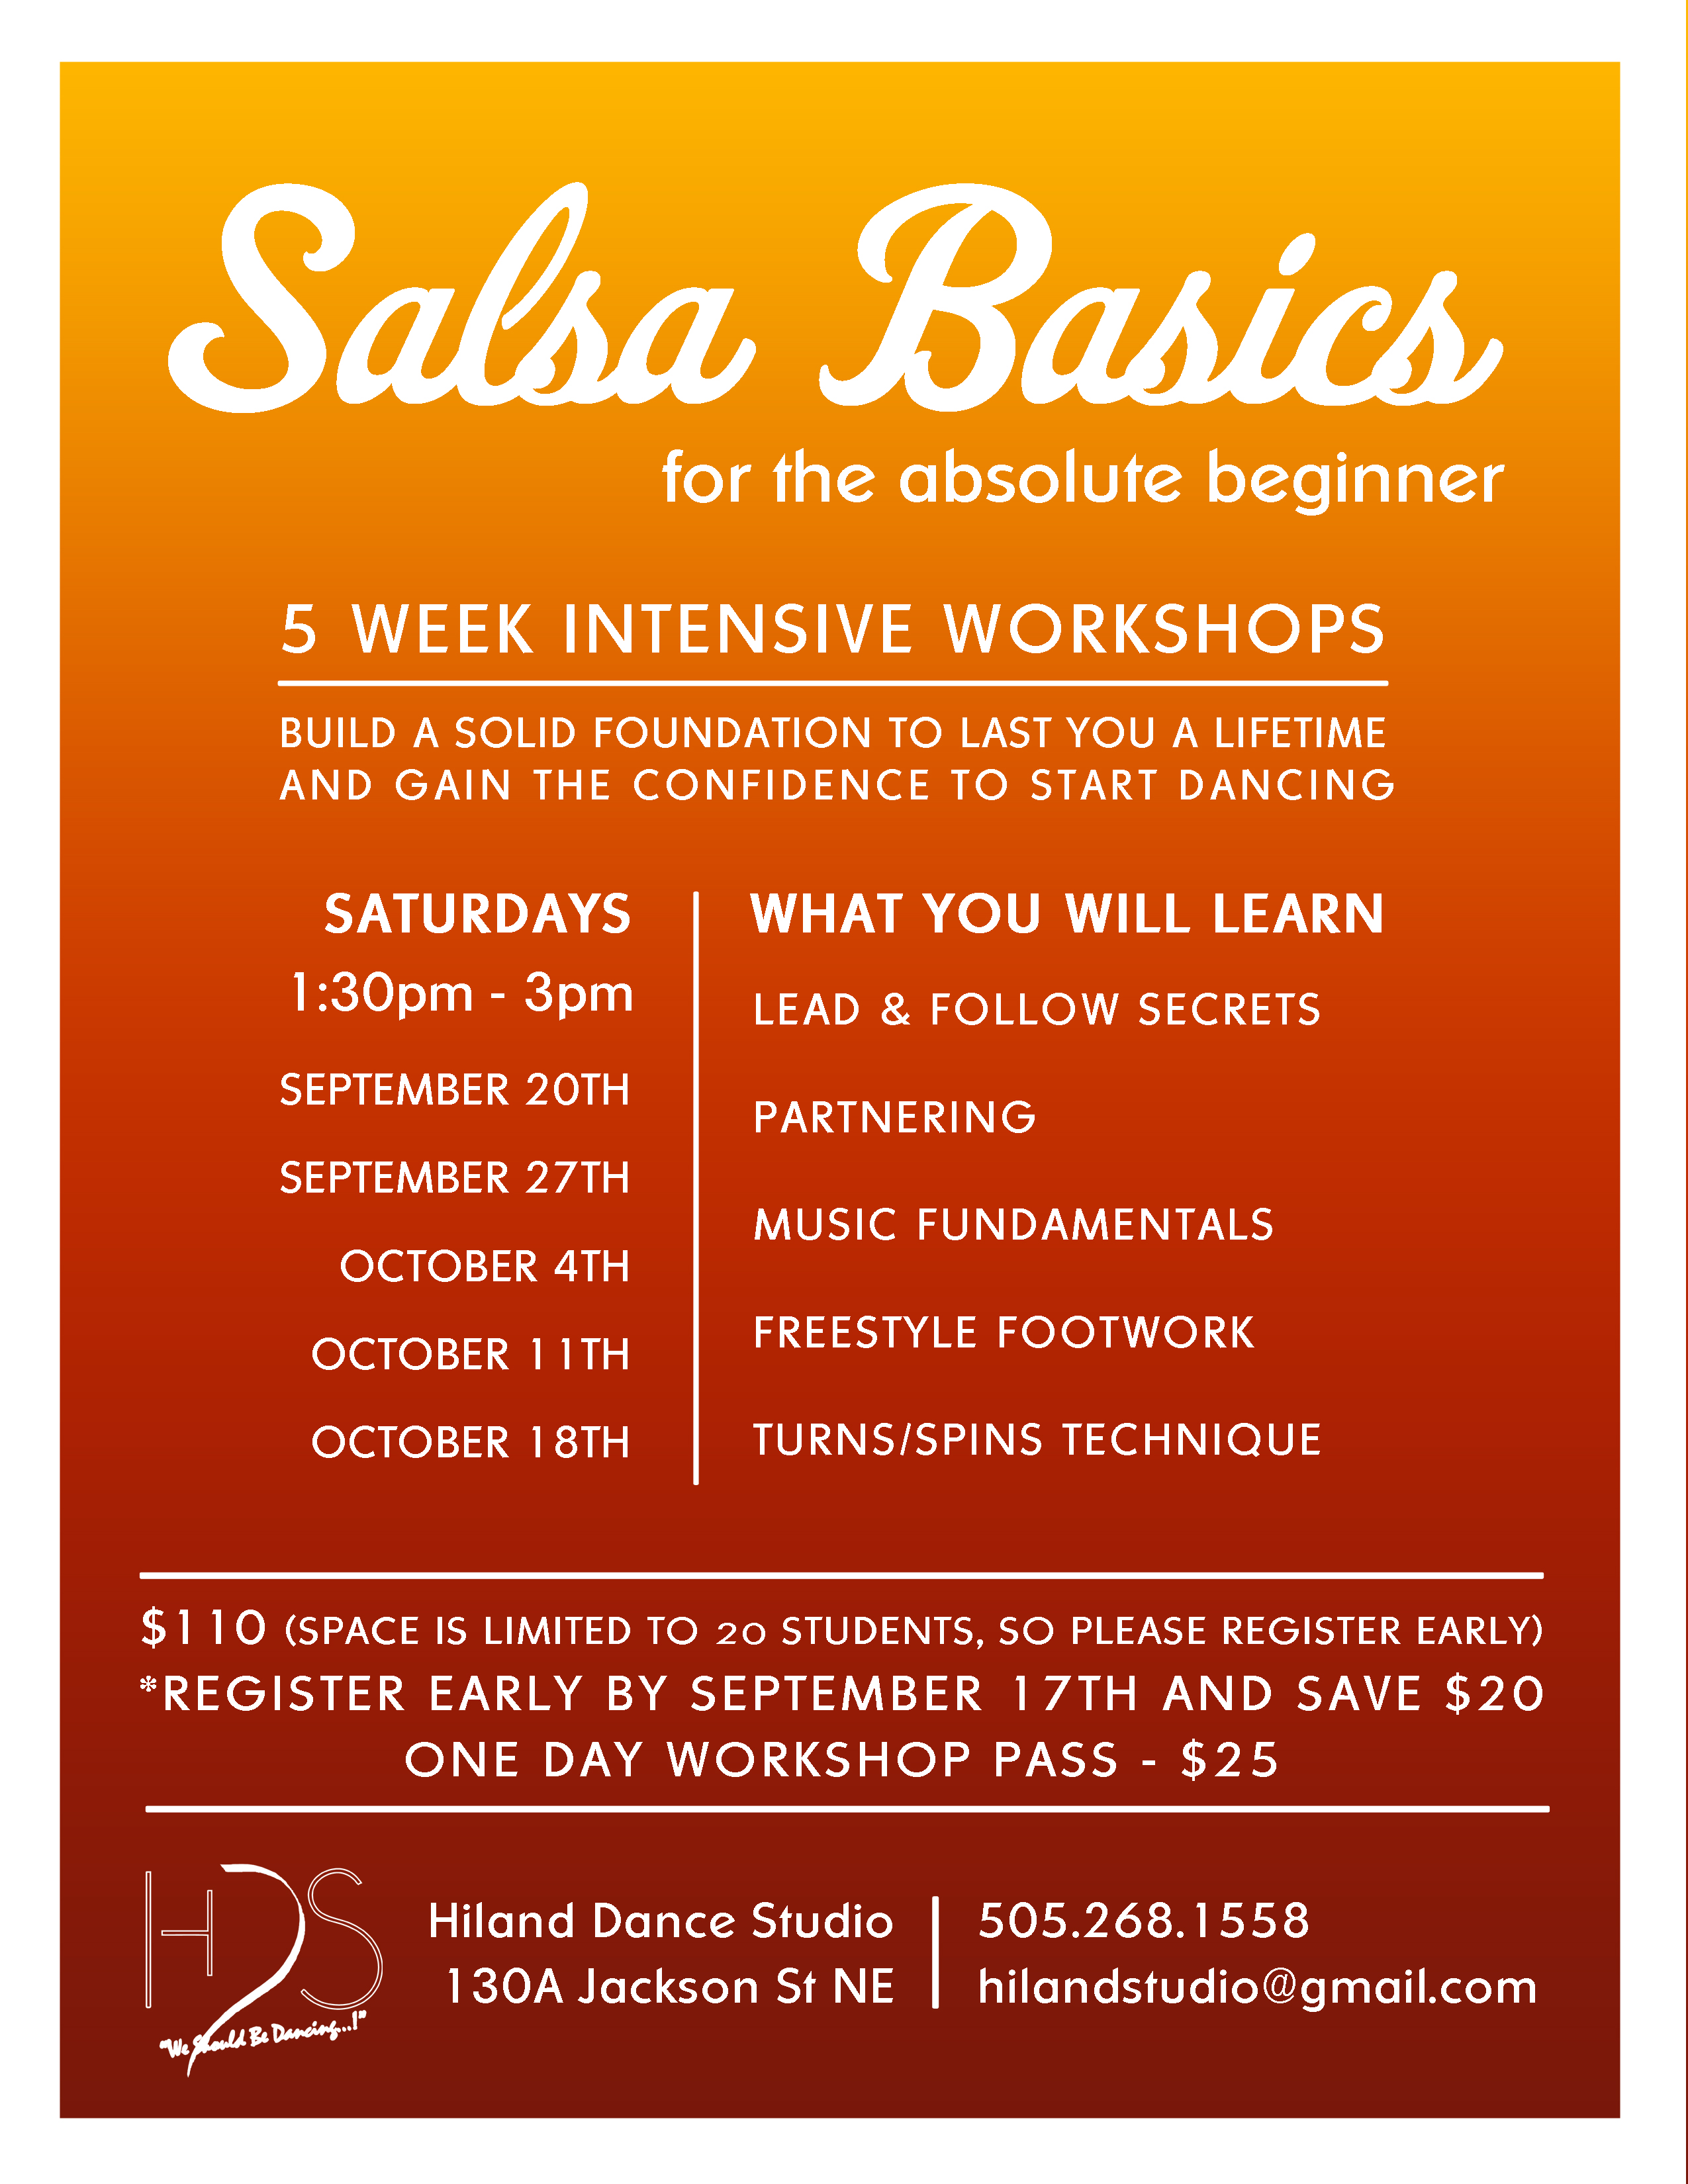 Salsa Basics for the Absolute Beginner